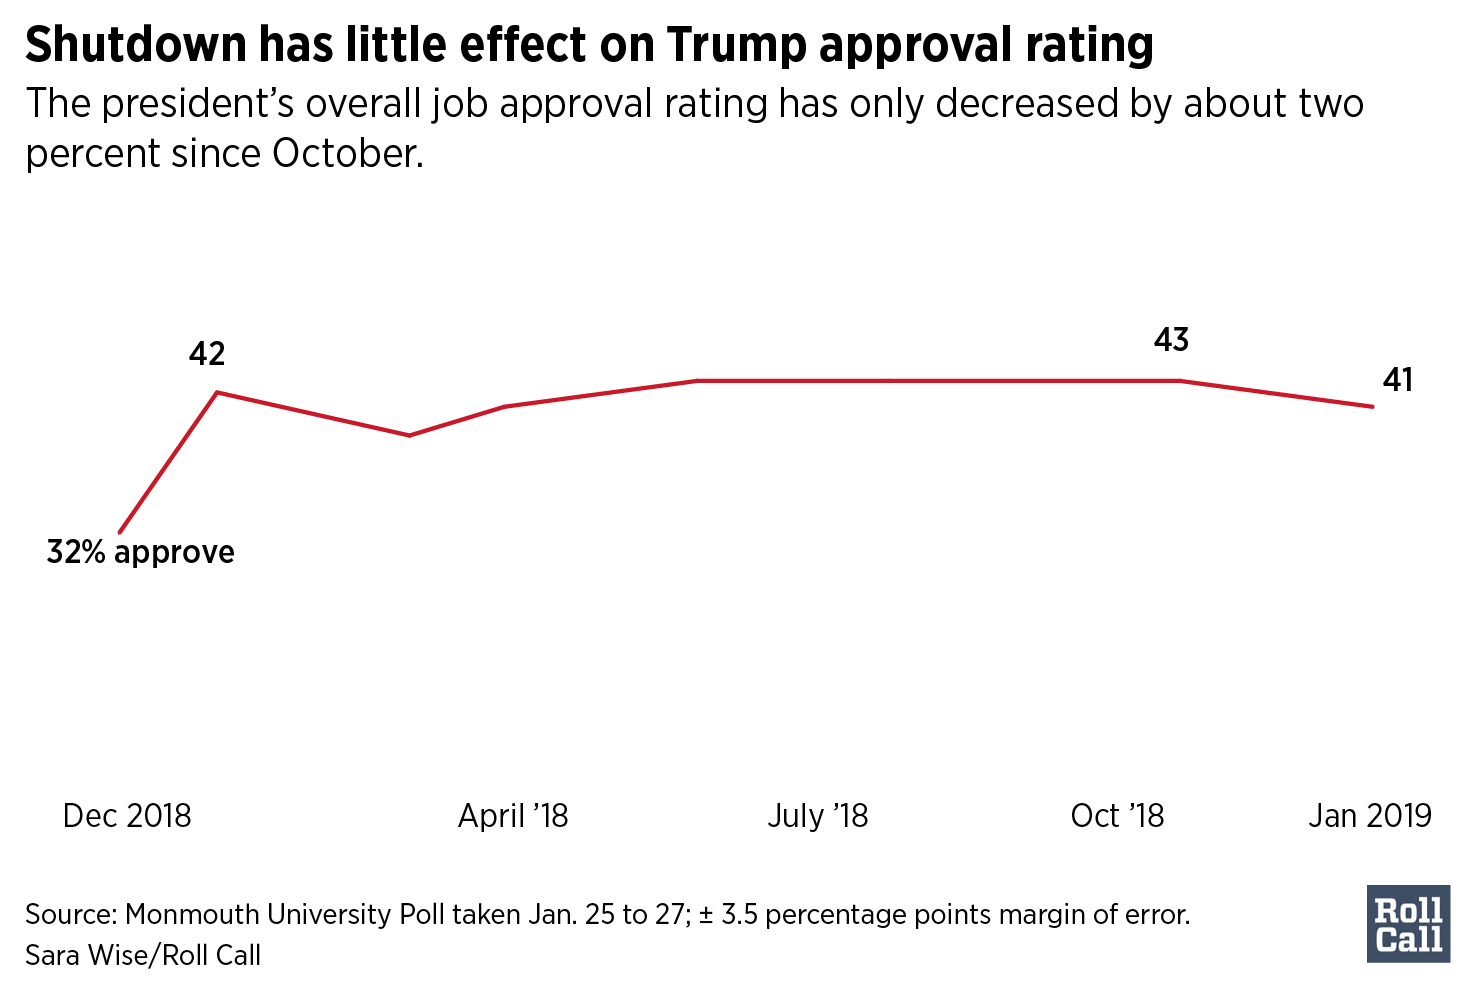 Shutdown has little effect on Trump approval rating